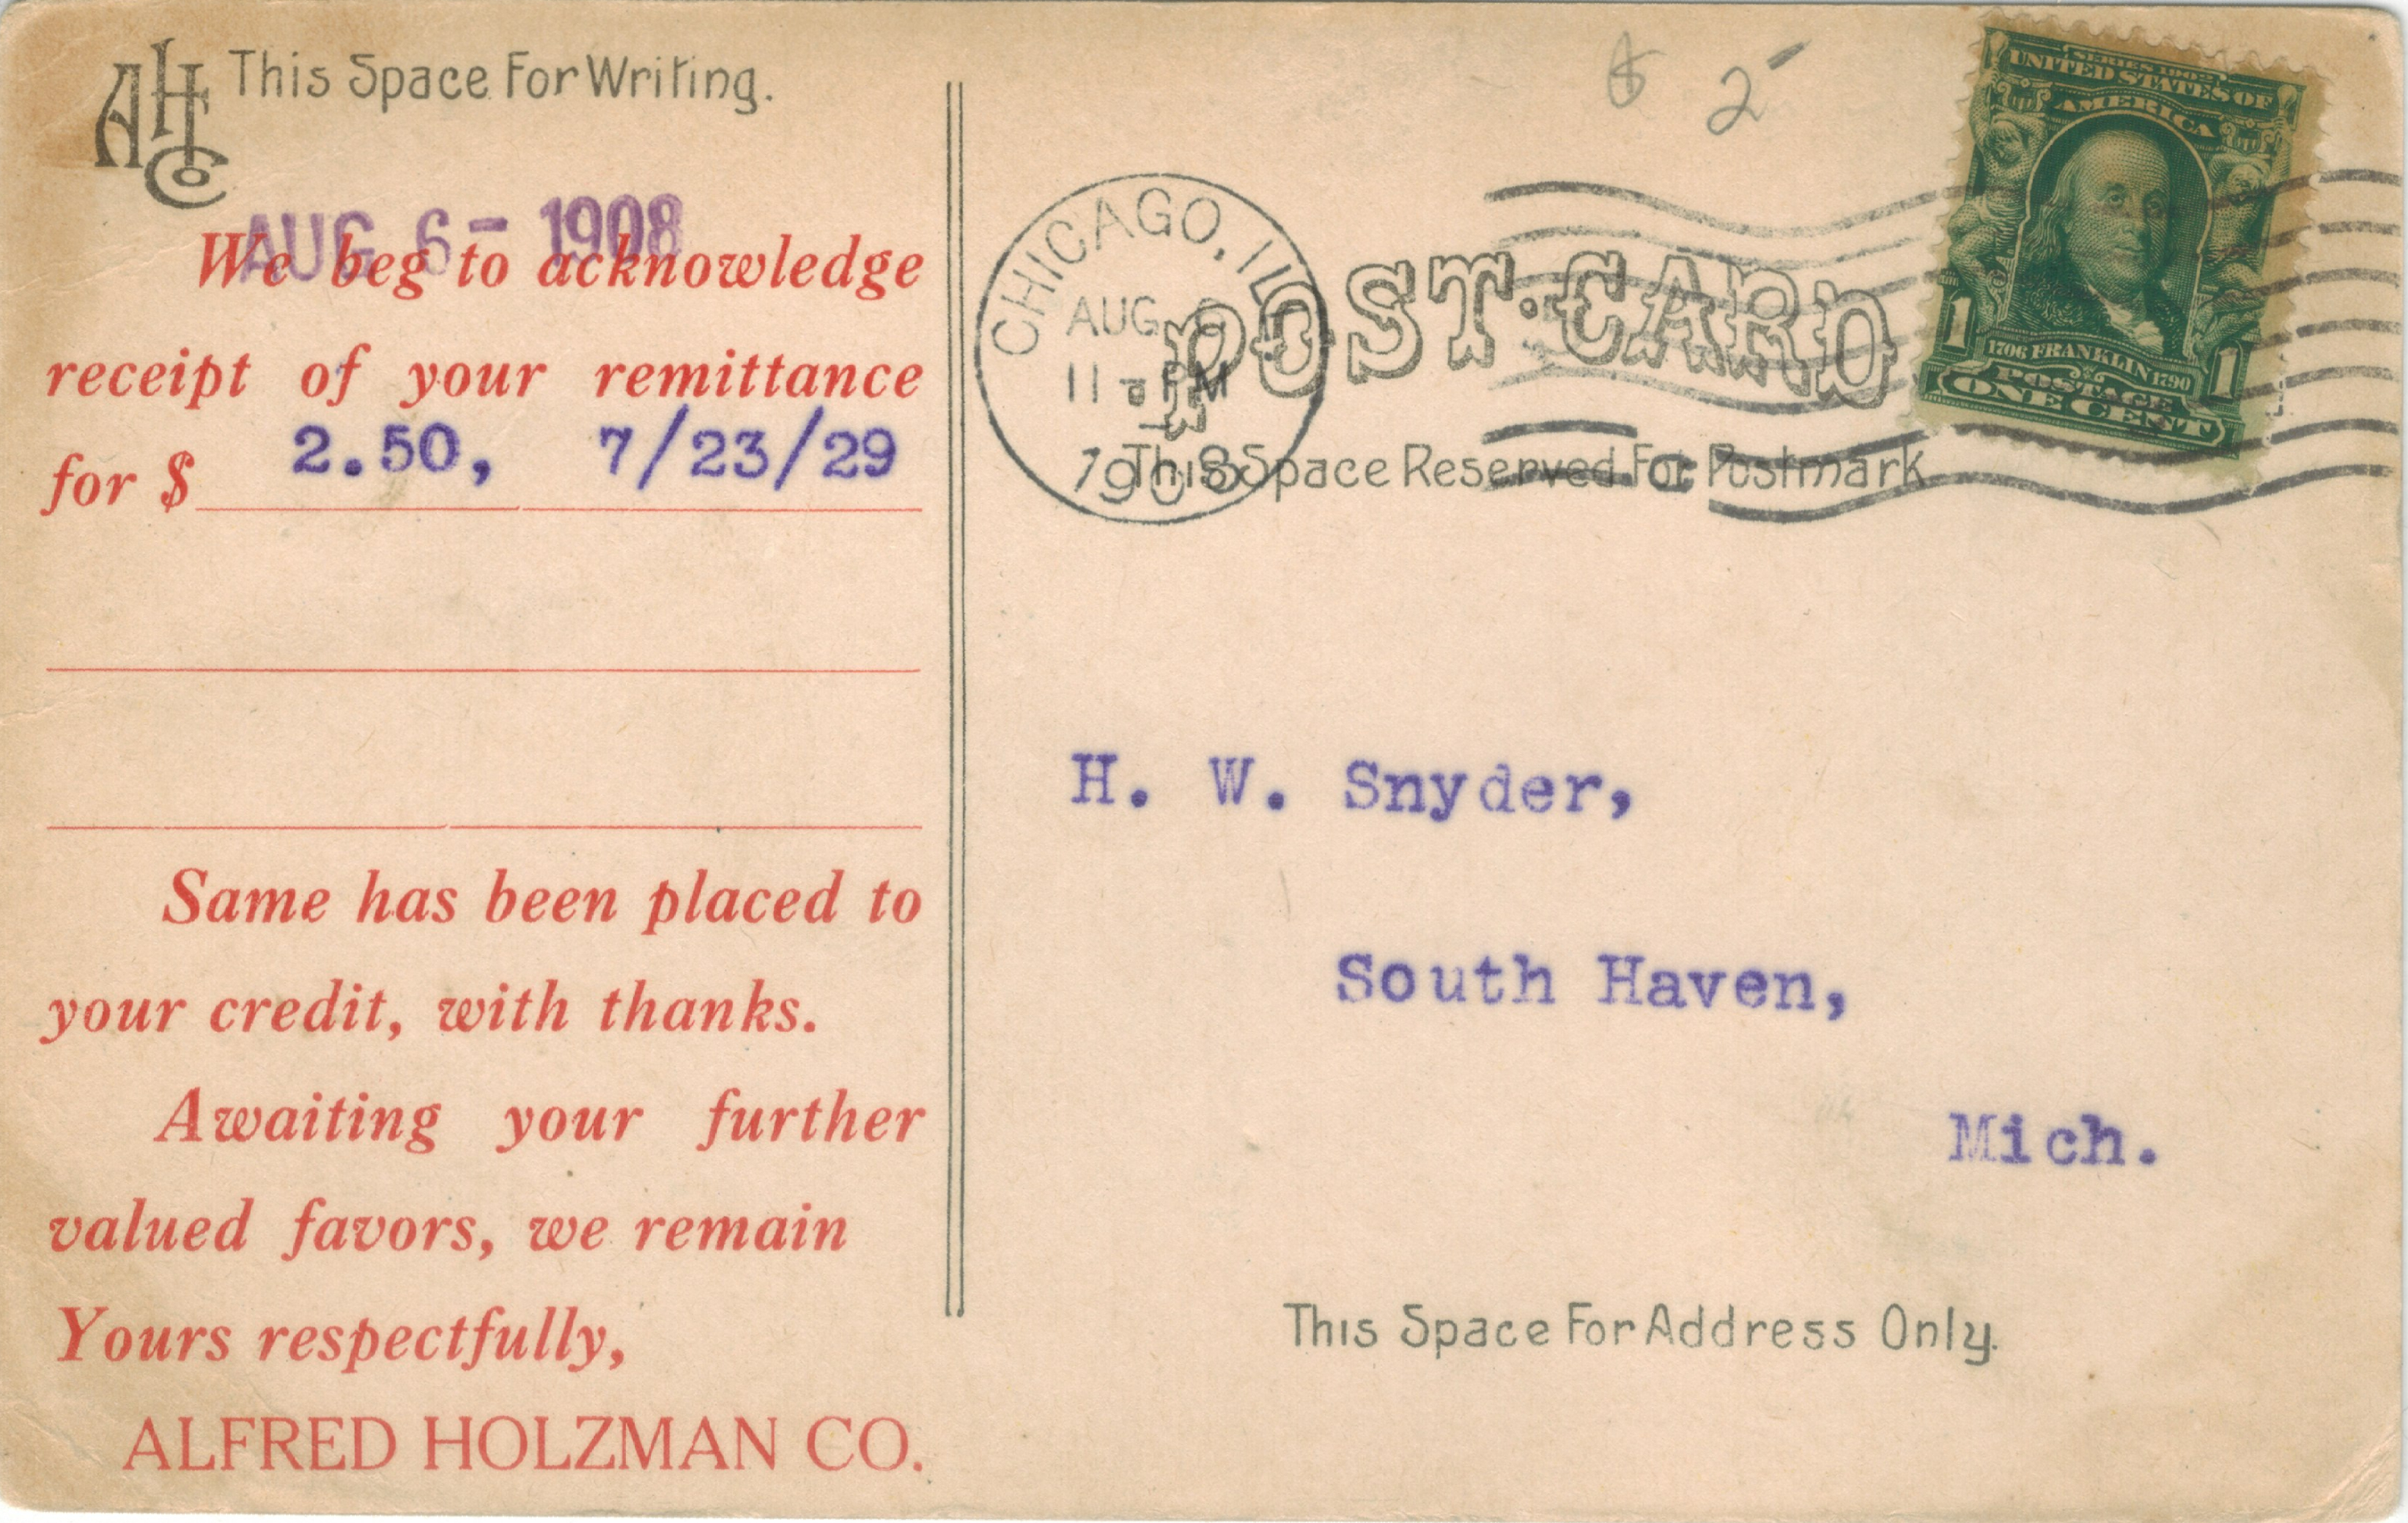 A postcard mailed on August 6, 1908, picturing the factory of Alfred Holzman Company, Chicago, which claimed to be